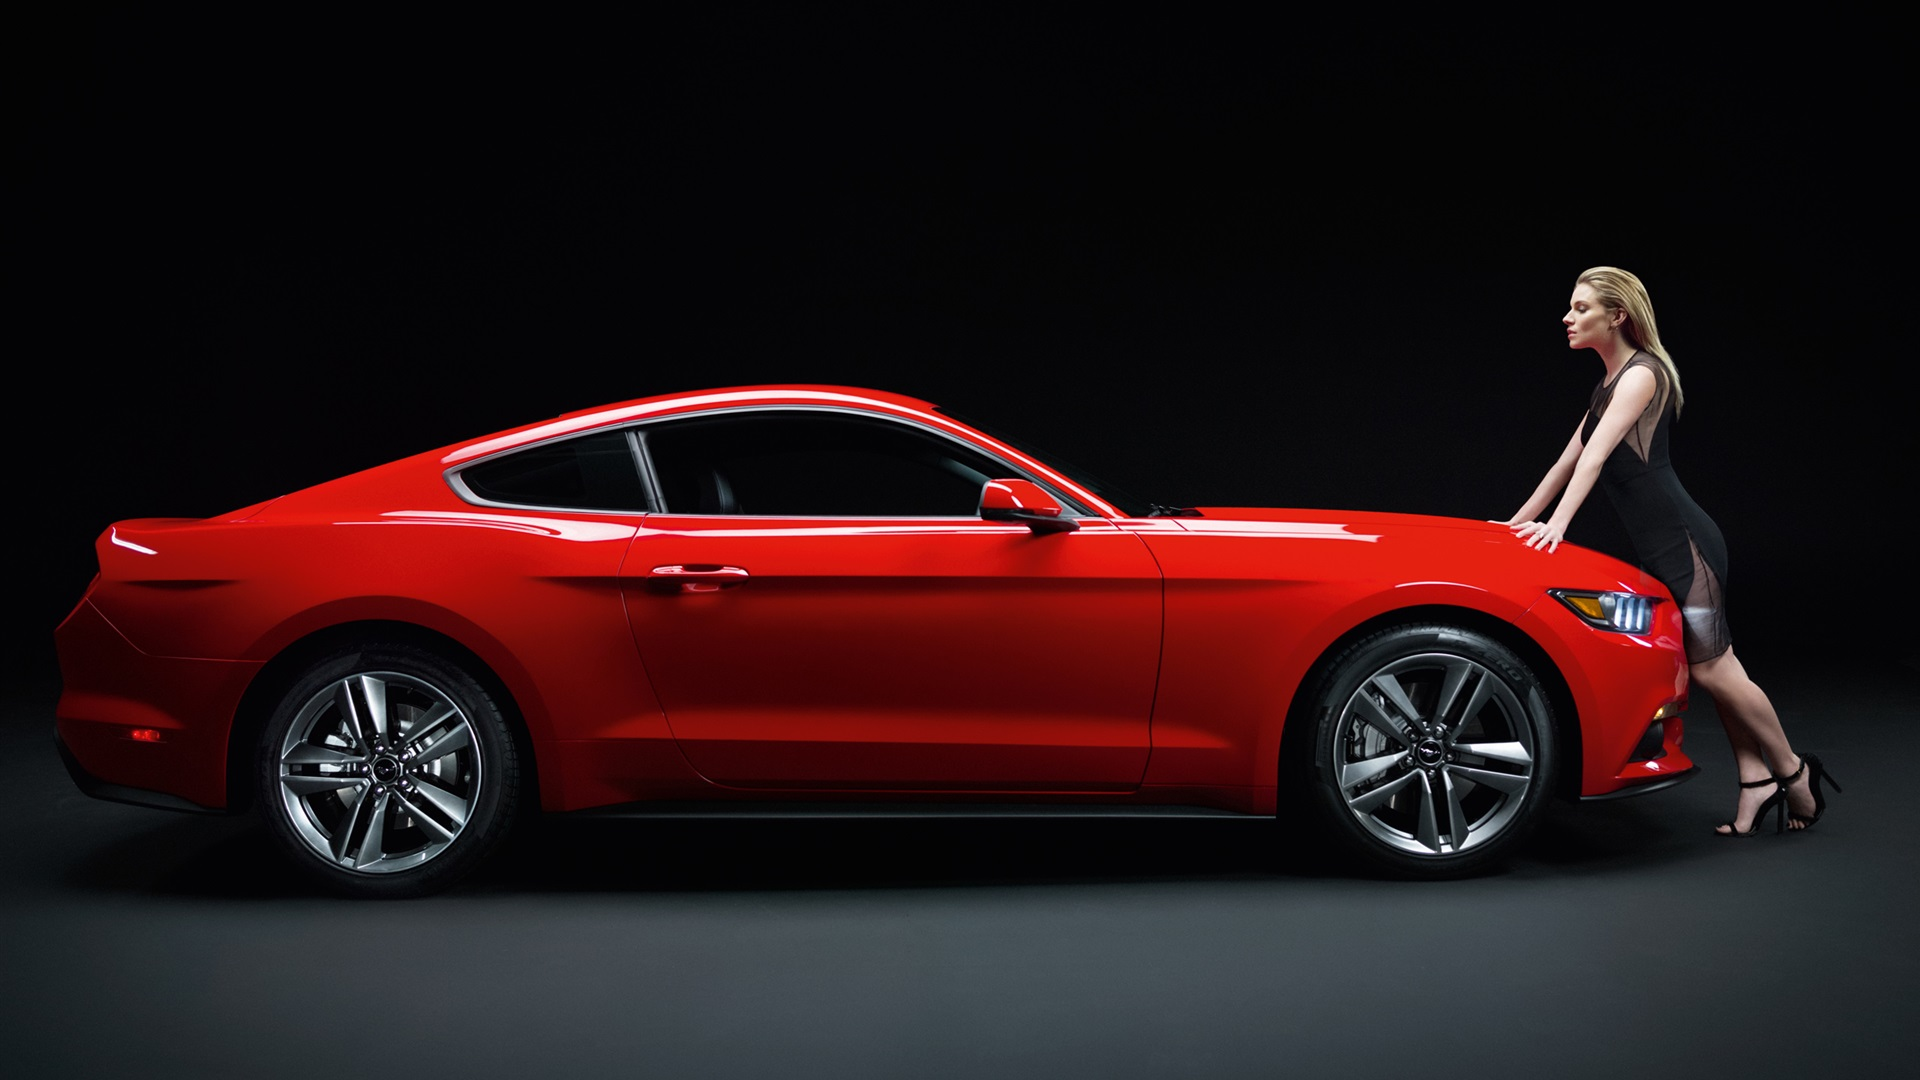 Ford Mustang GT red muscle car with girl Wallpaper ...